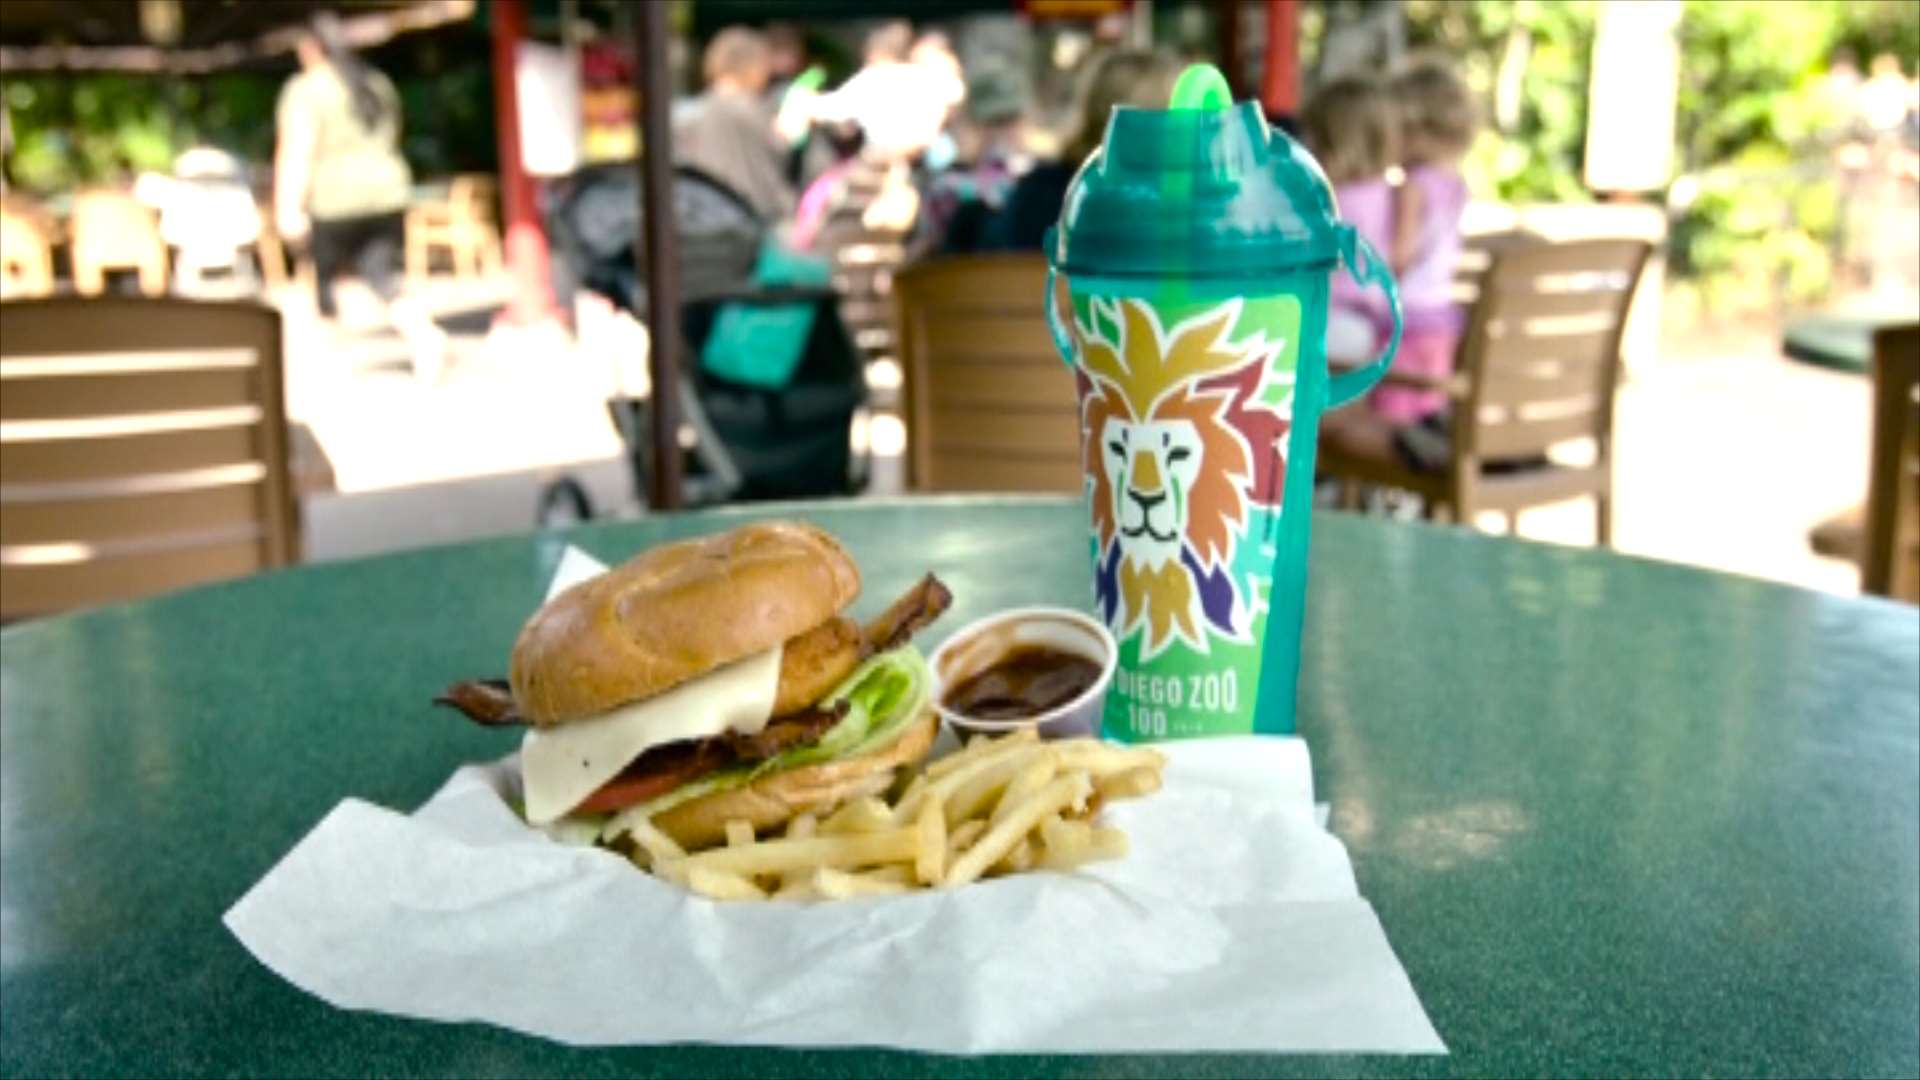 Image of a burger, fries, and a large custom souvenir cup with lid and straw